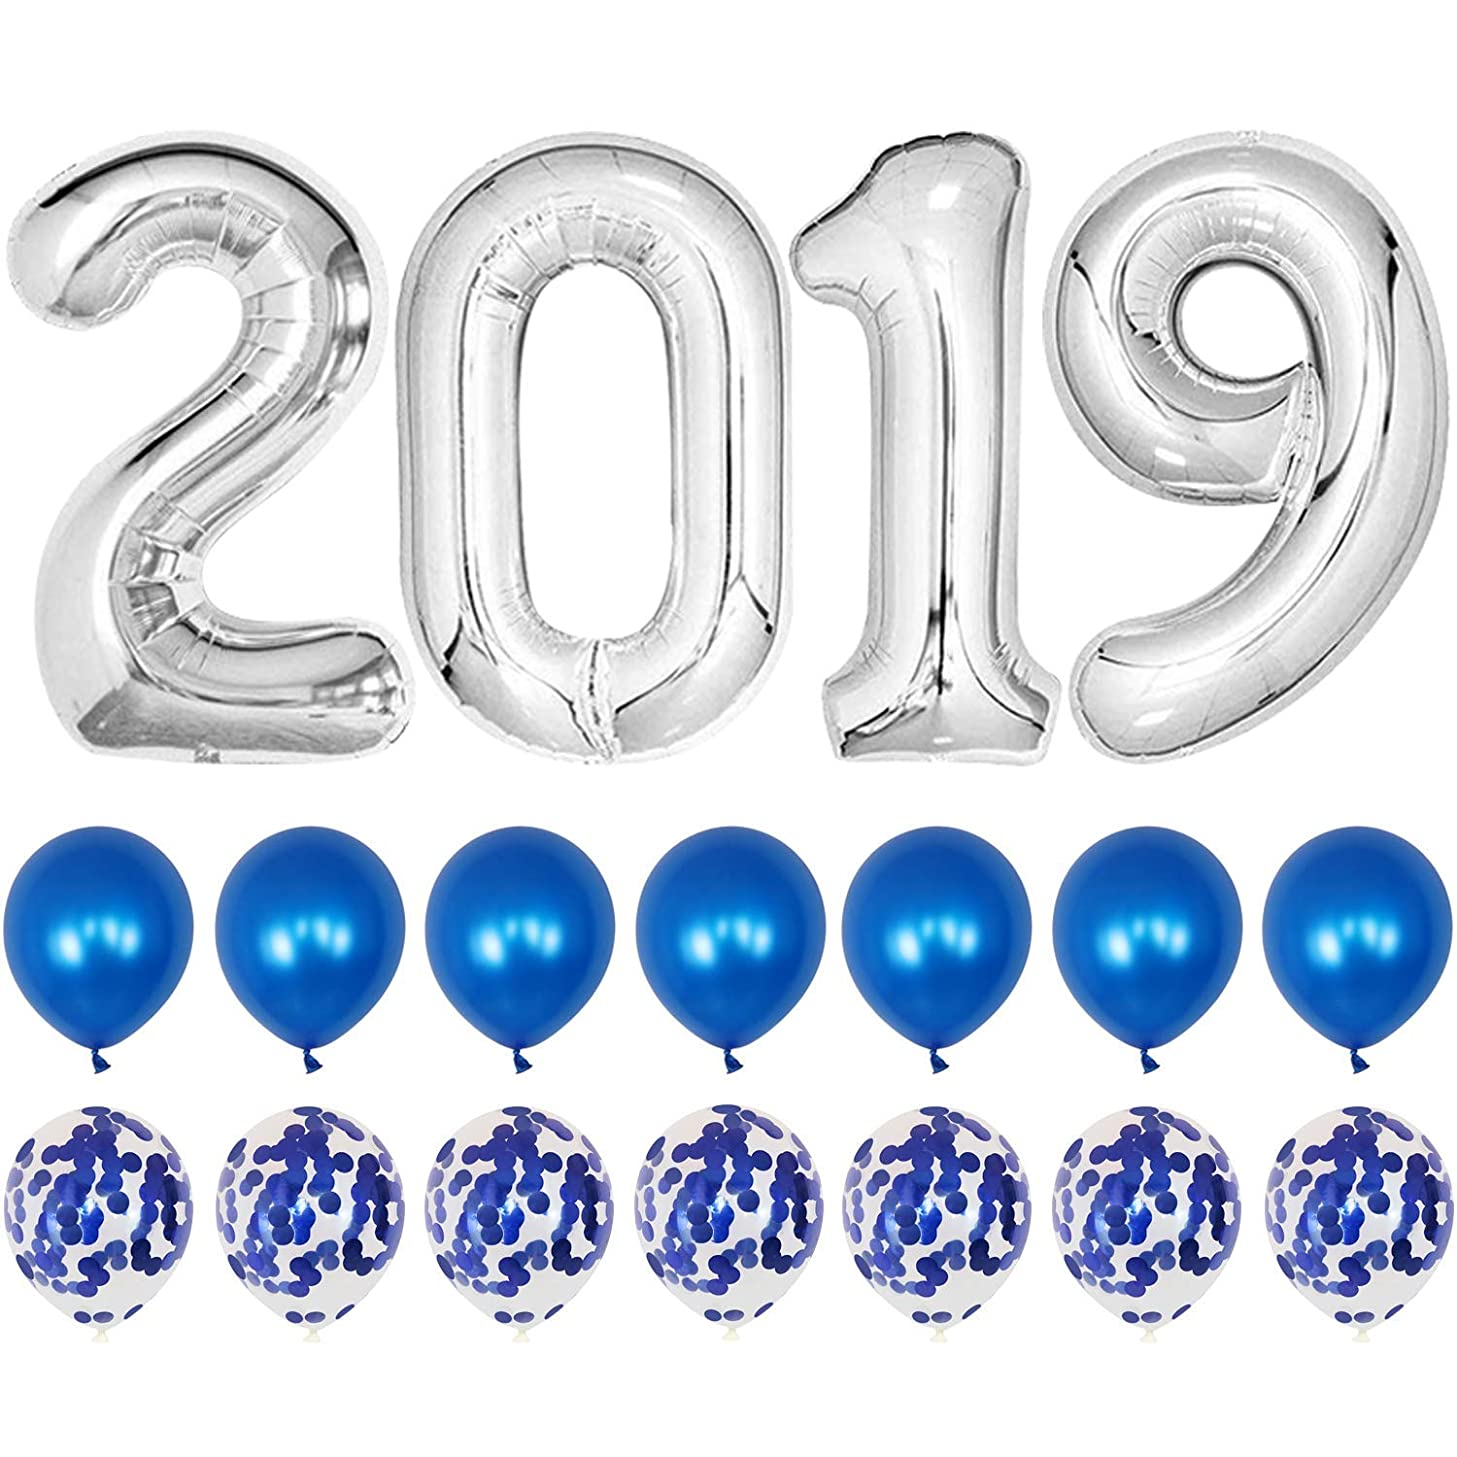 2019 Graduation Balloons-40Inch 2019 Foil Balloons with Black Red Latex Balloons/Confetti Balloons-Pack of 26,for Class of 2019 Graduation Decorations (Silver with Blue)